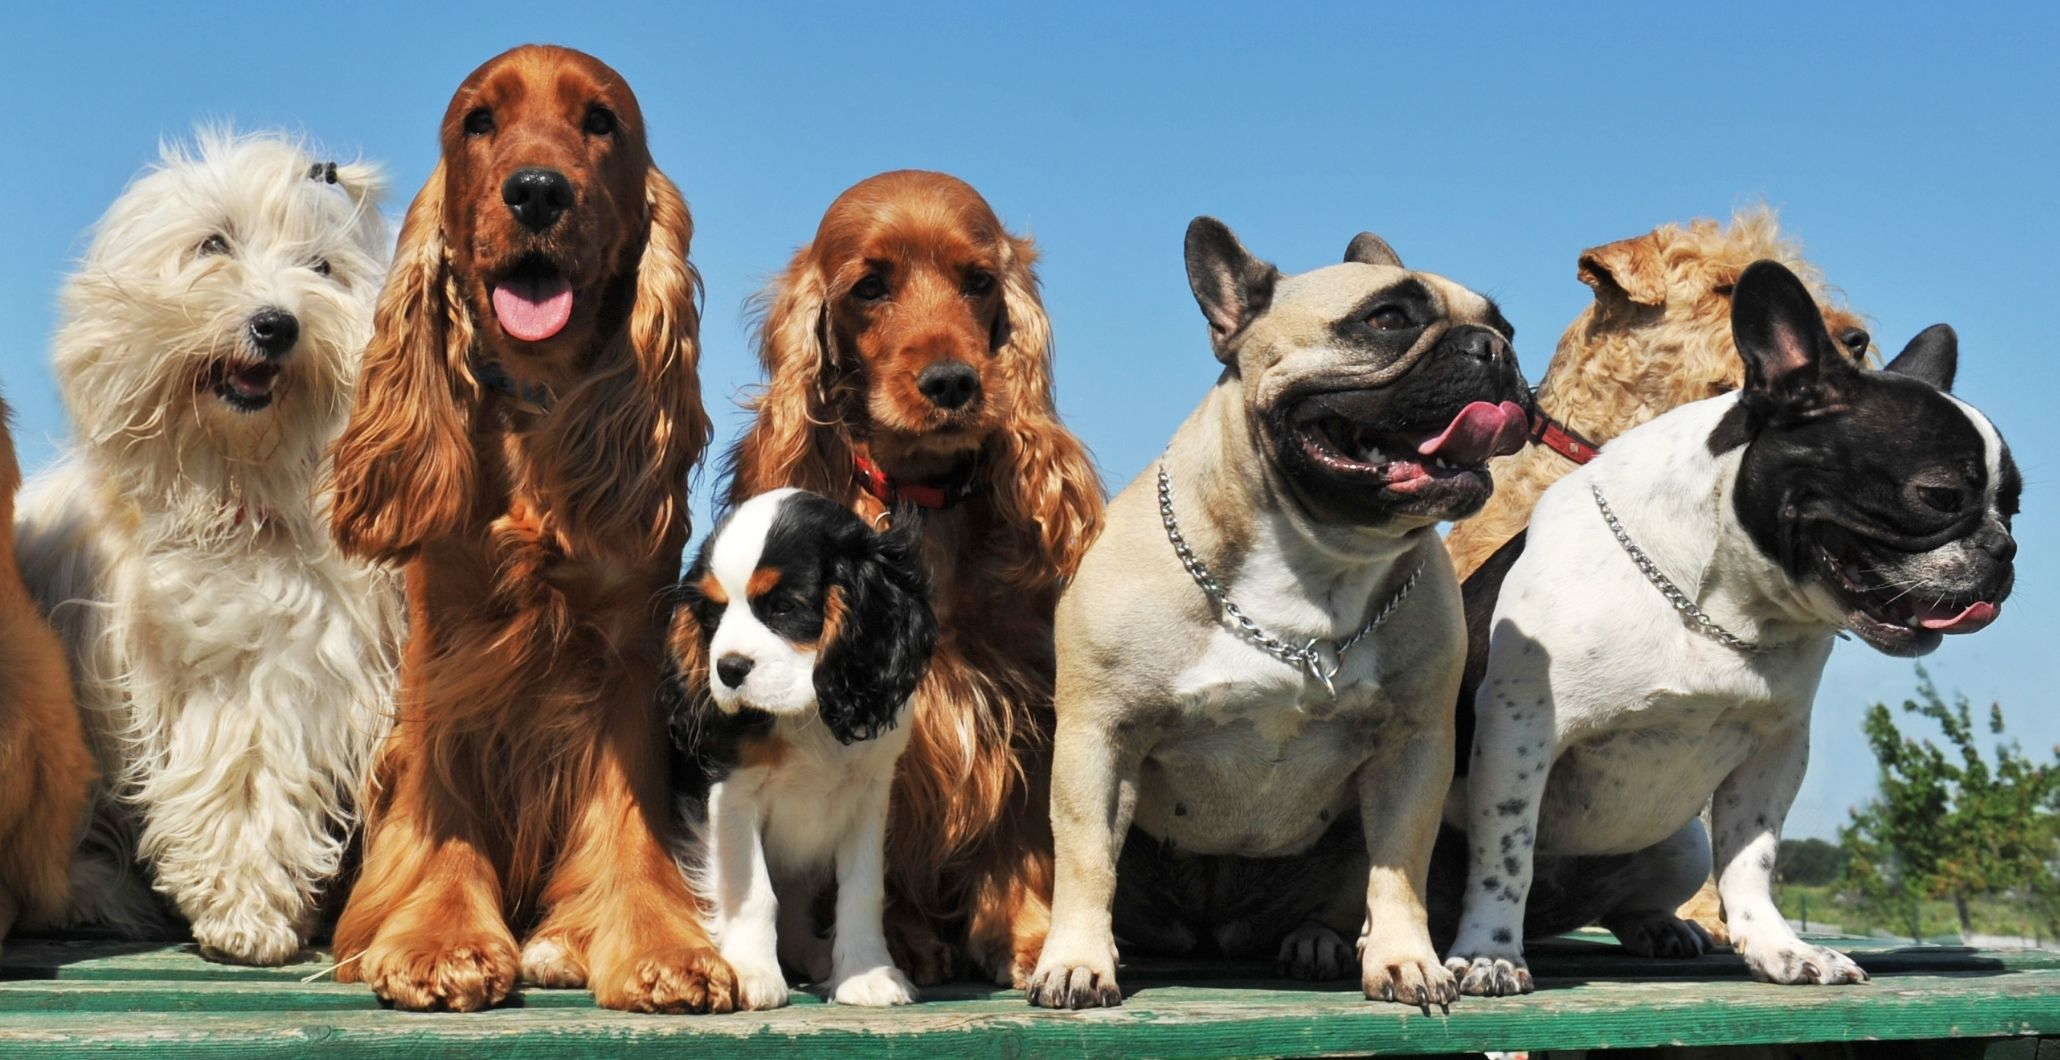 Beyond the Breed: Exploring Dog DNA